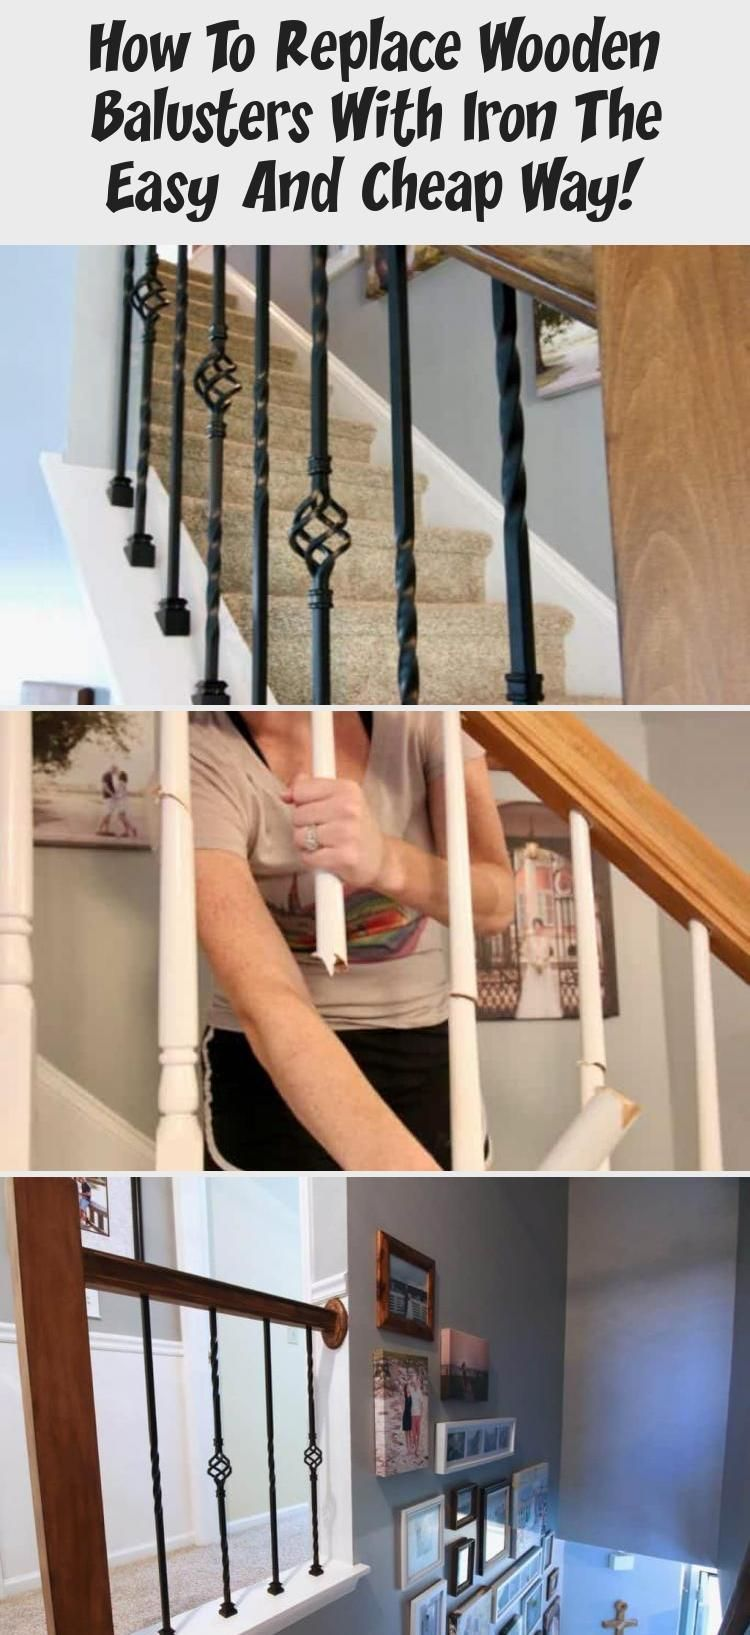 Best How To Replace Wooden Balusters With Iron The Easy And Cheap Way Pinokyo In 2020 Diy Home 400 x 300